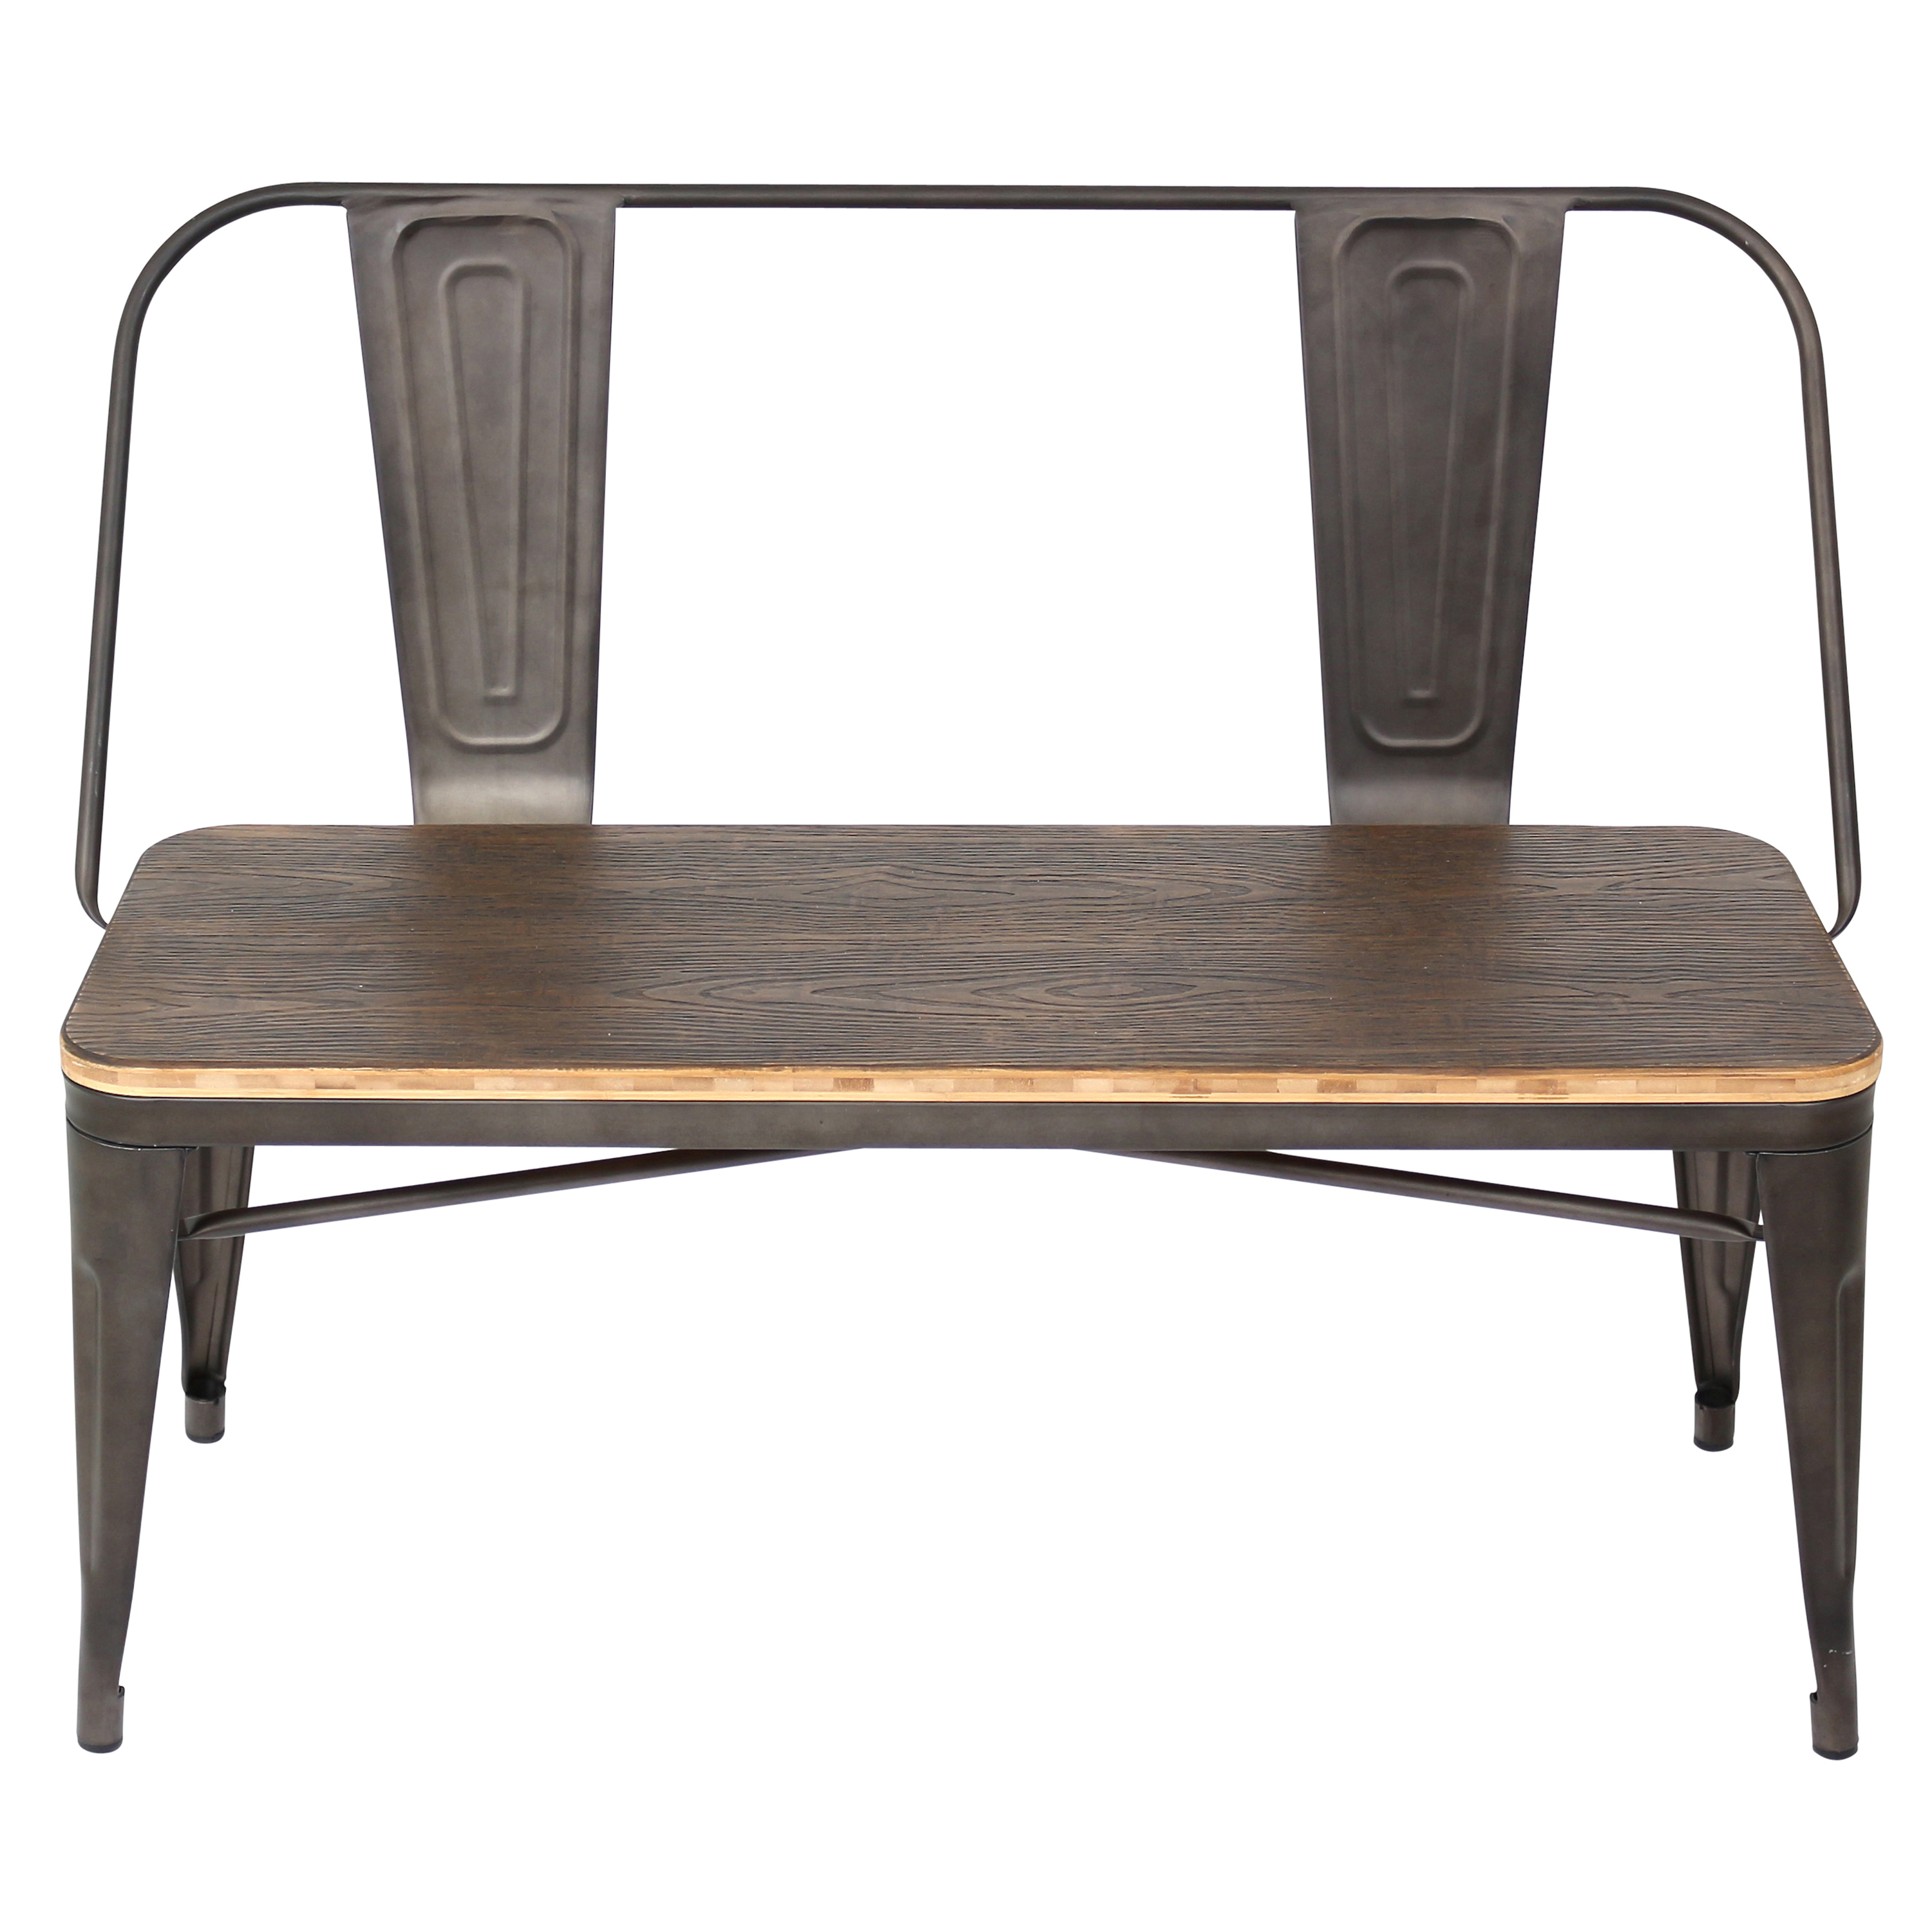 Tremendous 15 Attractive And Affordable Dining Settees Under 600 Caraccident5 Cool Chair Designs And Ideas Caraccident5Info